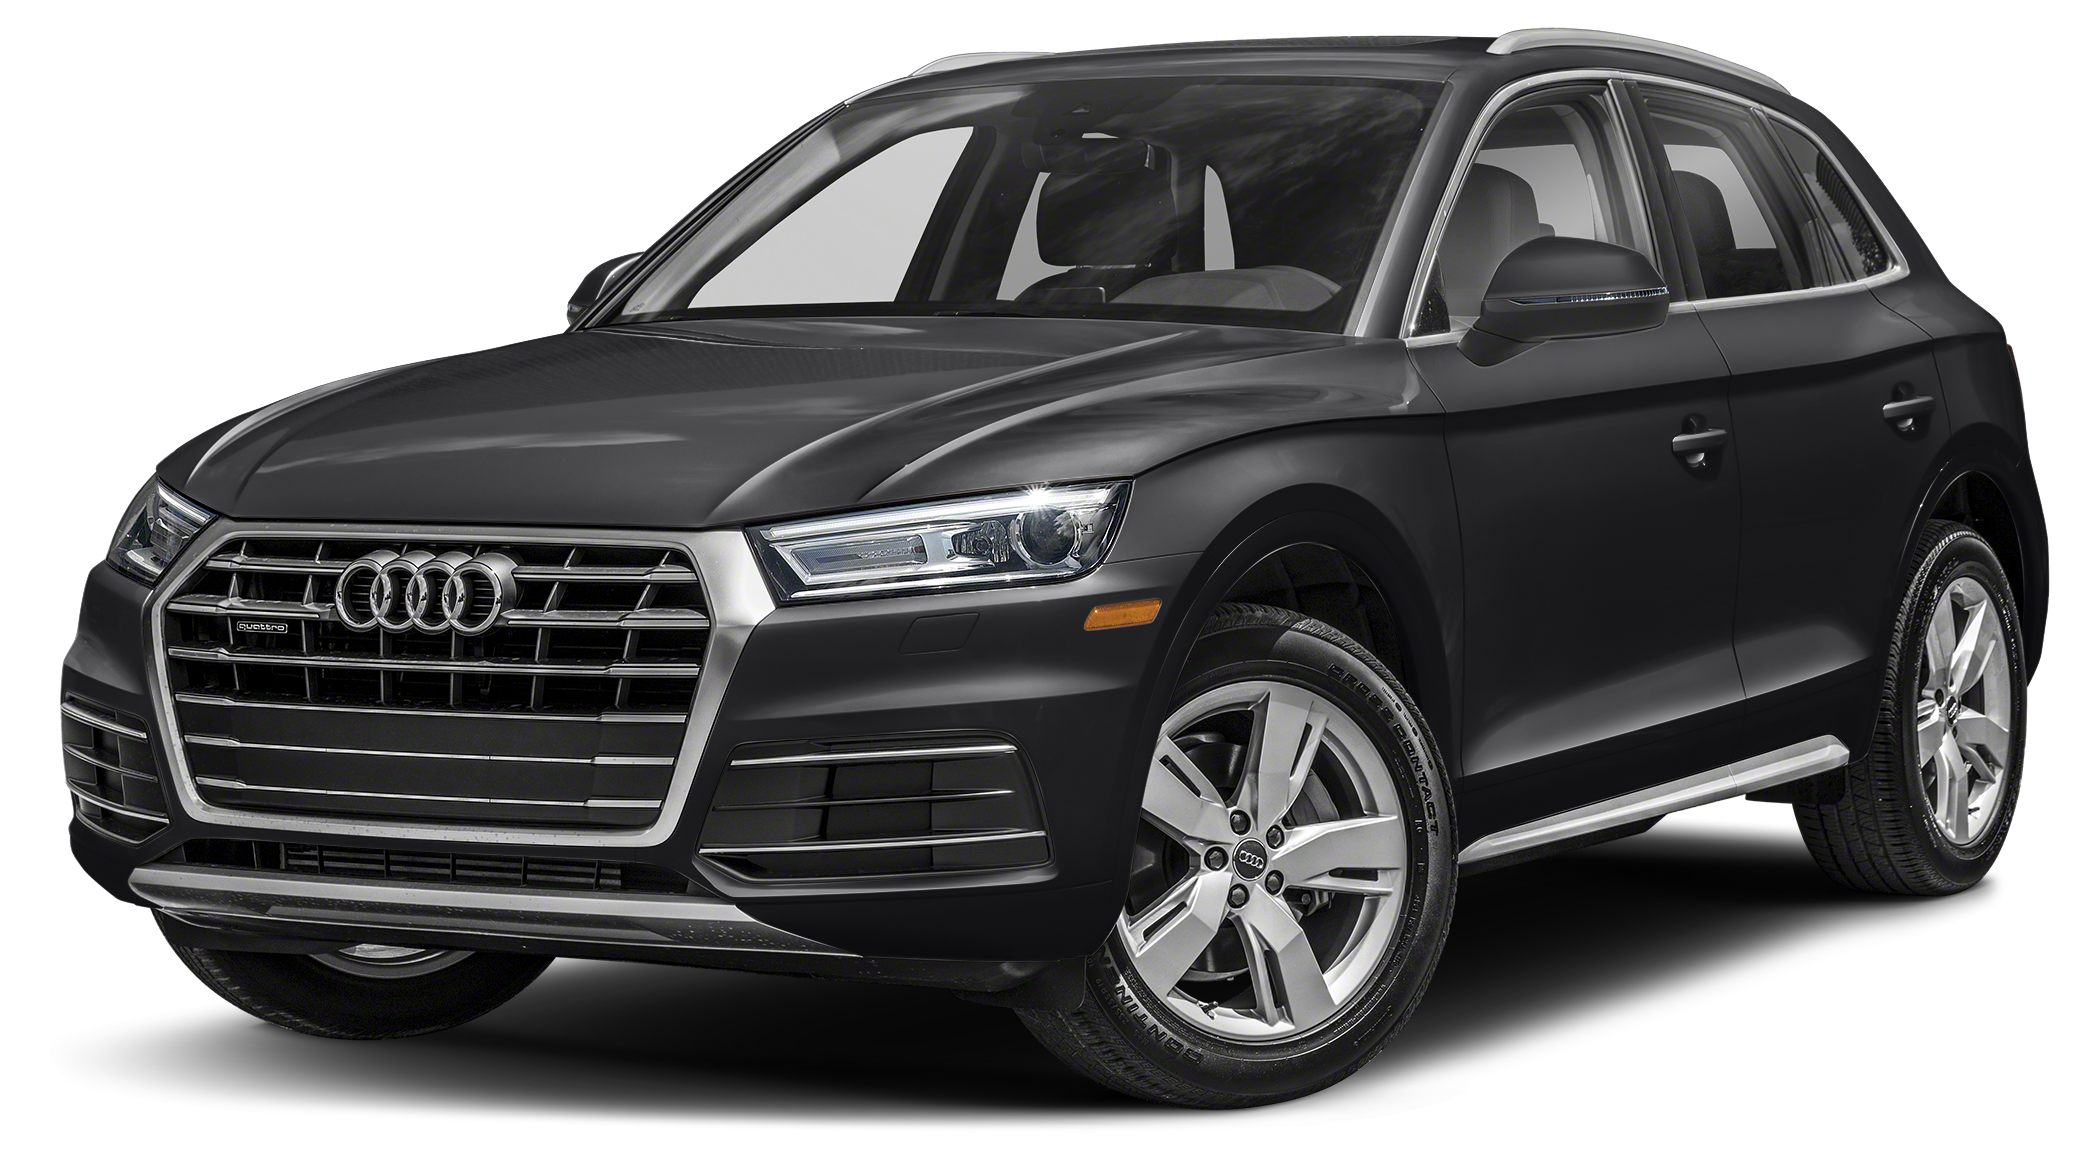 2018 Audi Q5 20T Premium Optional equipment includes Premium Plus Package Navigation Package W